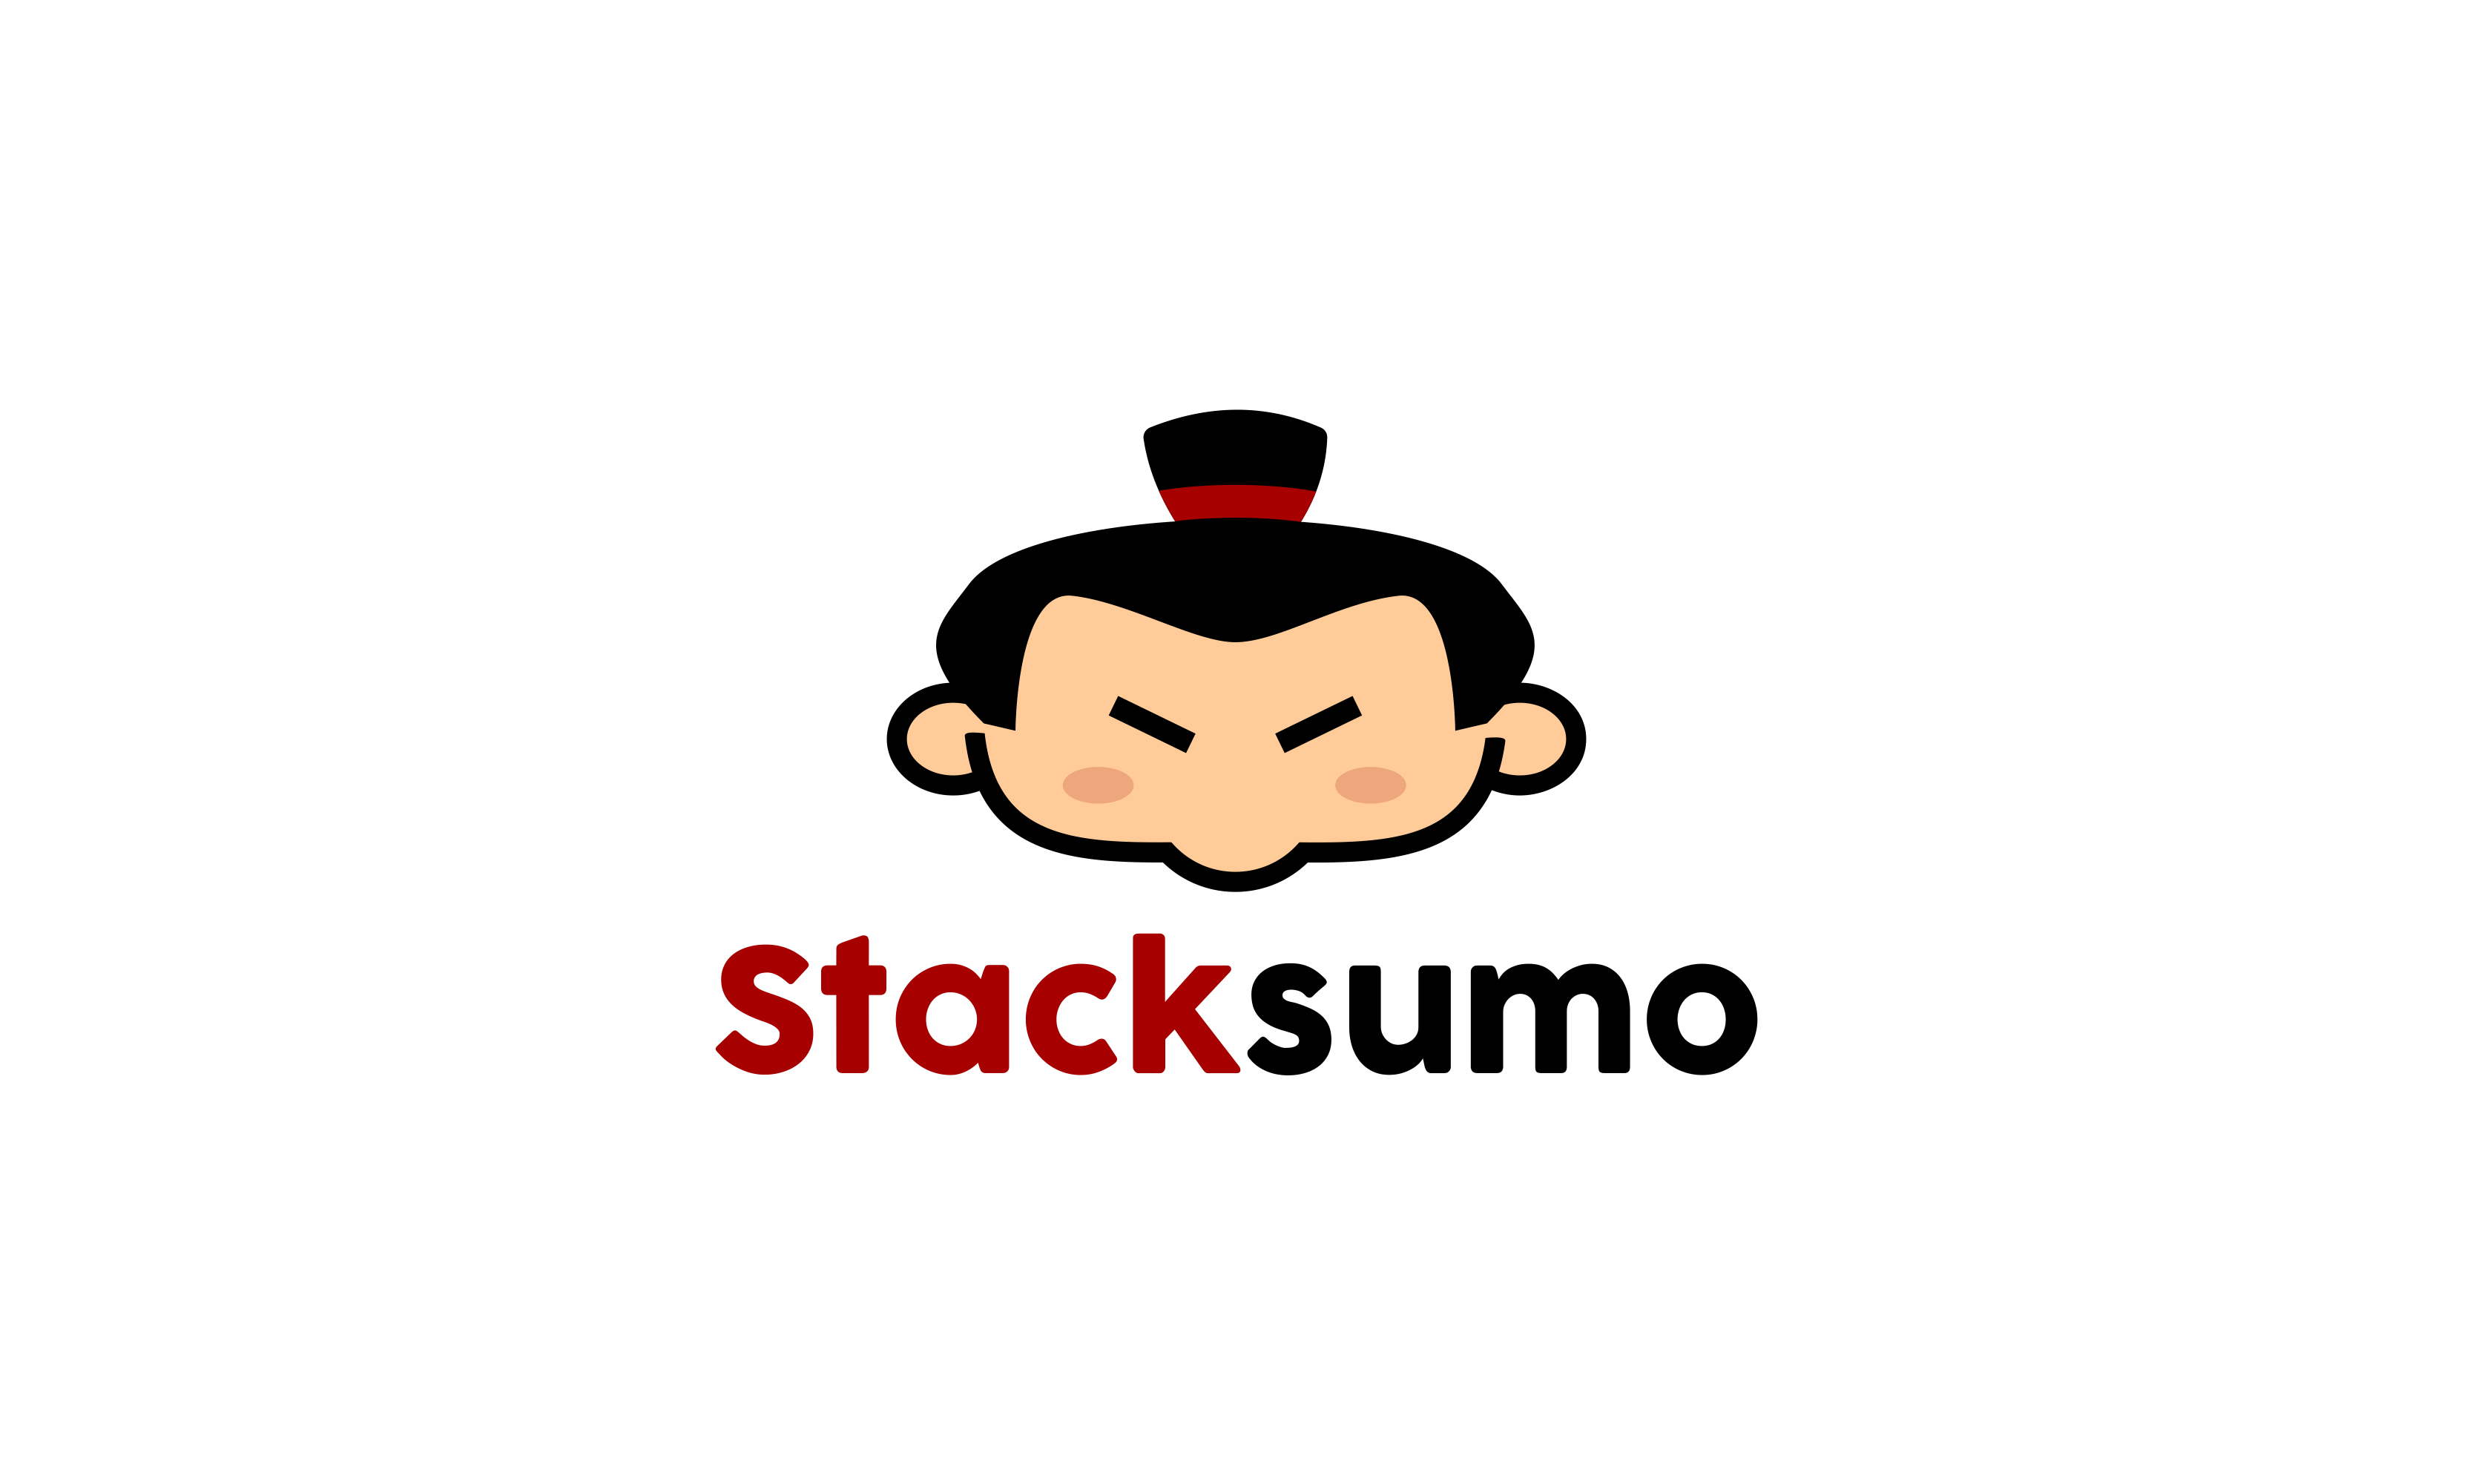 Stacksumo